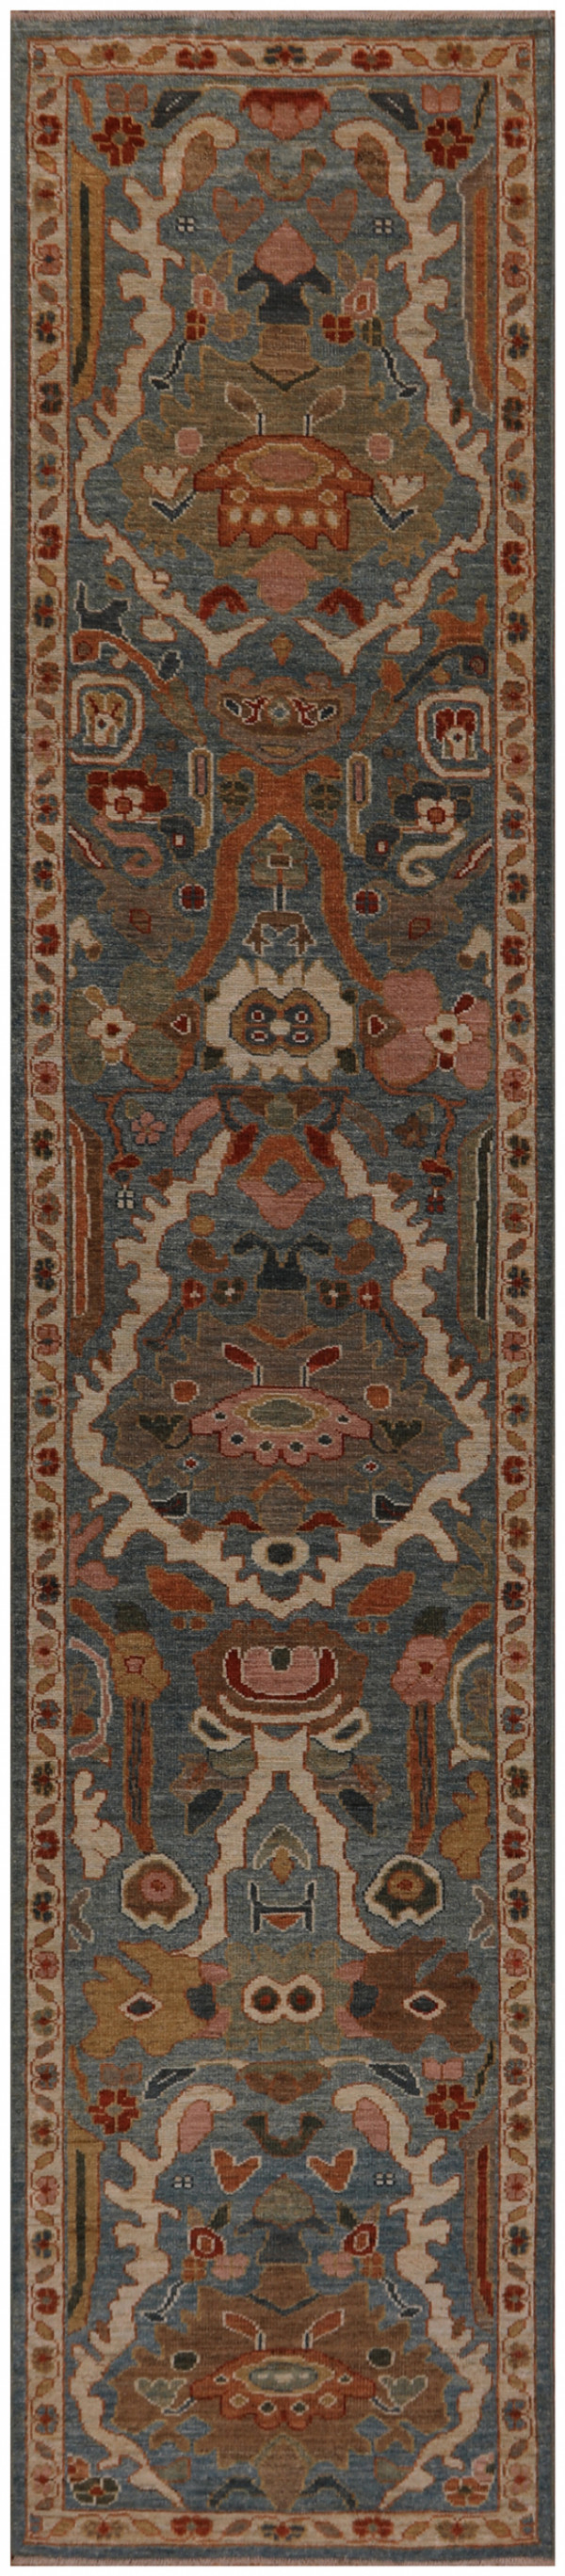 #42043 Sultanabad Persian Rug